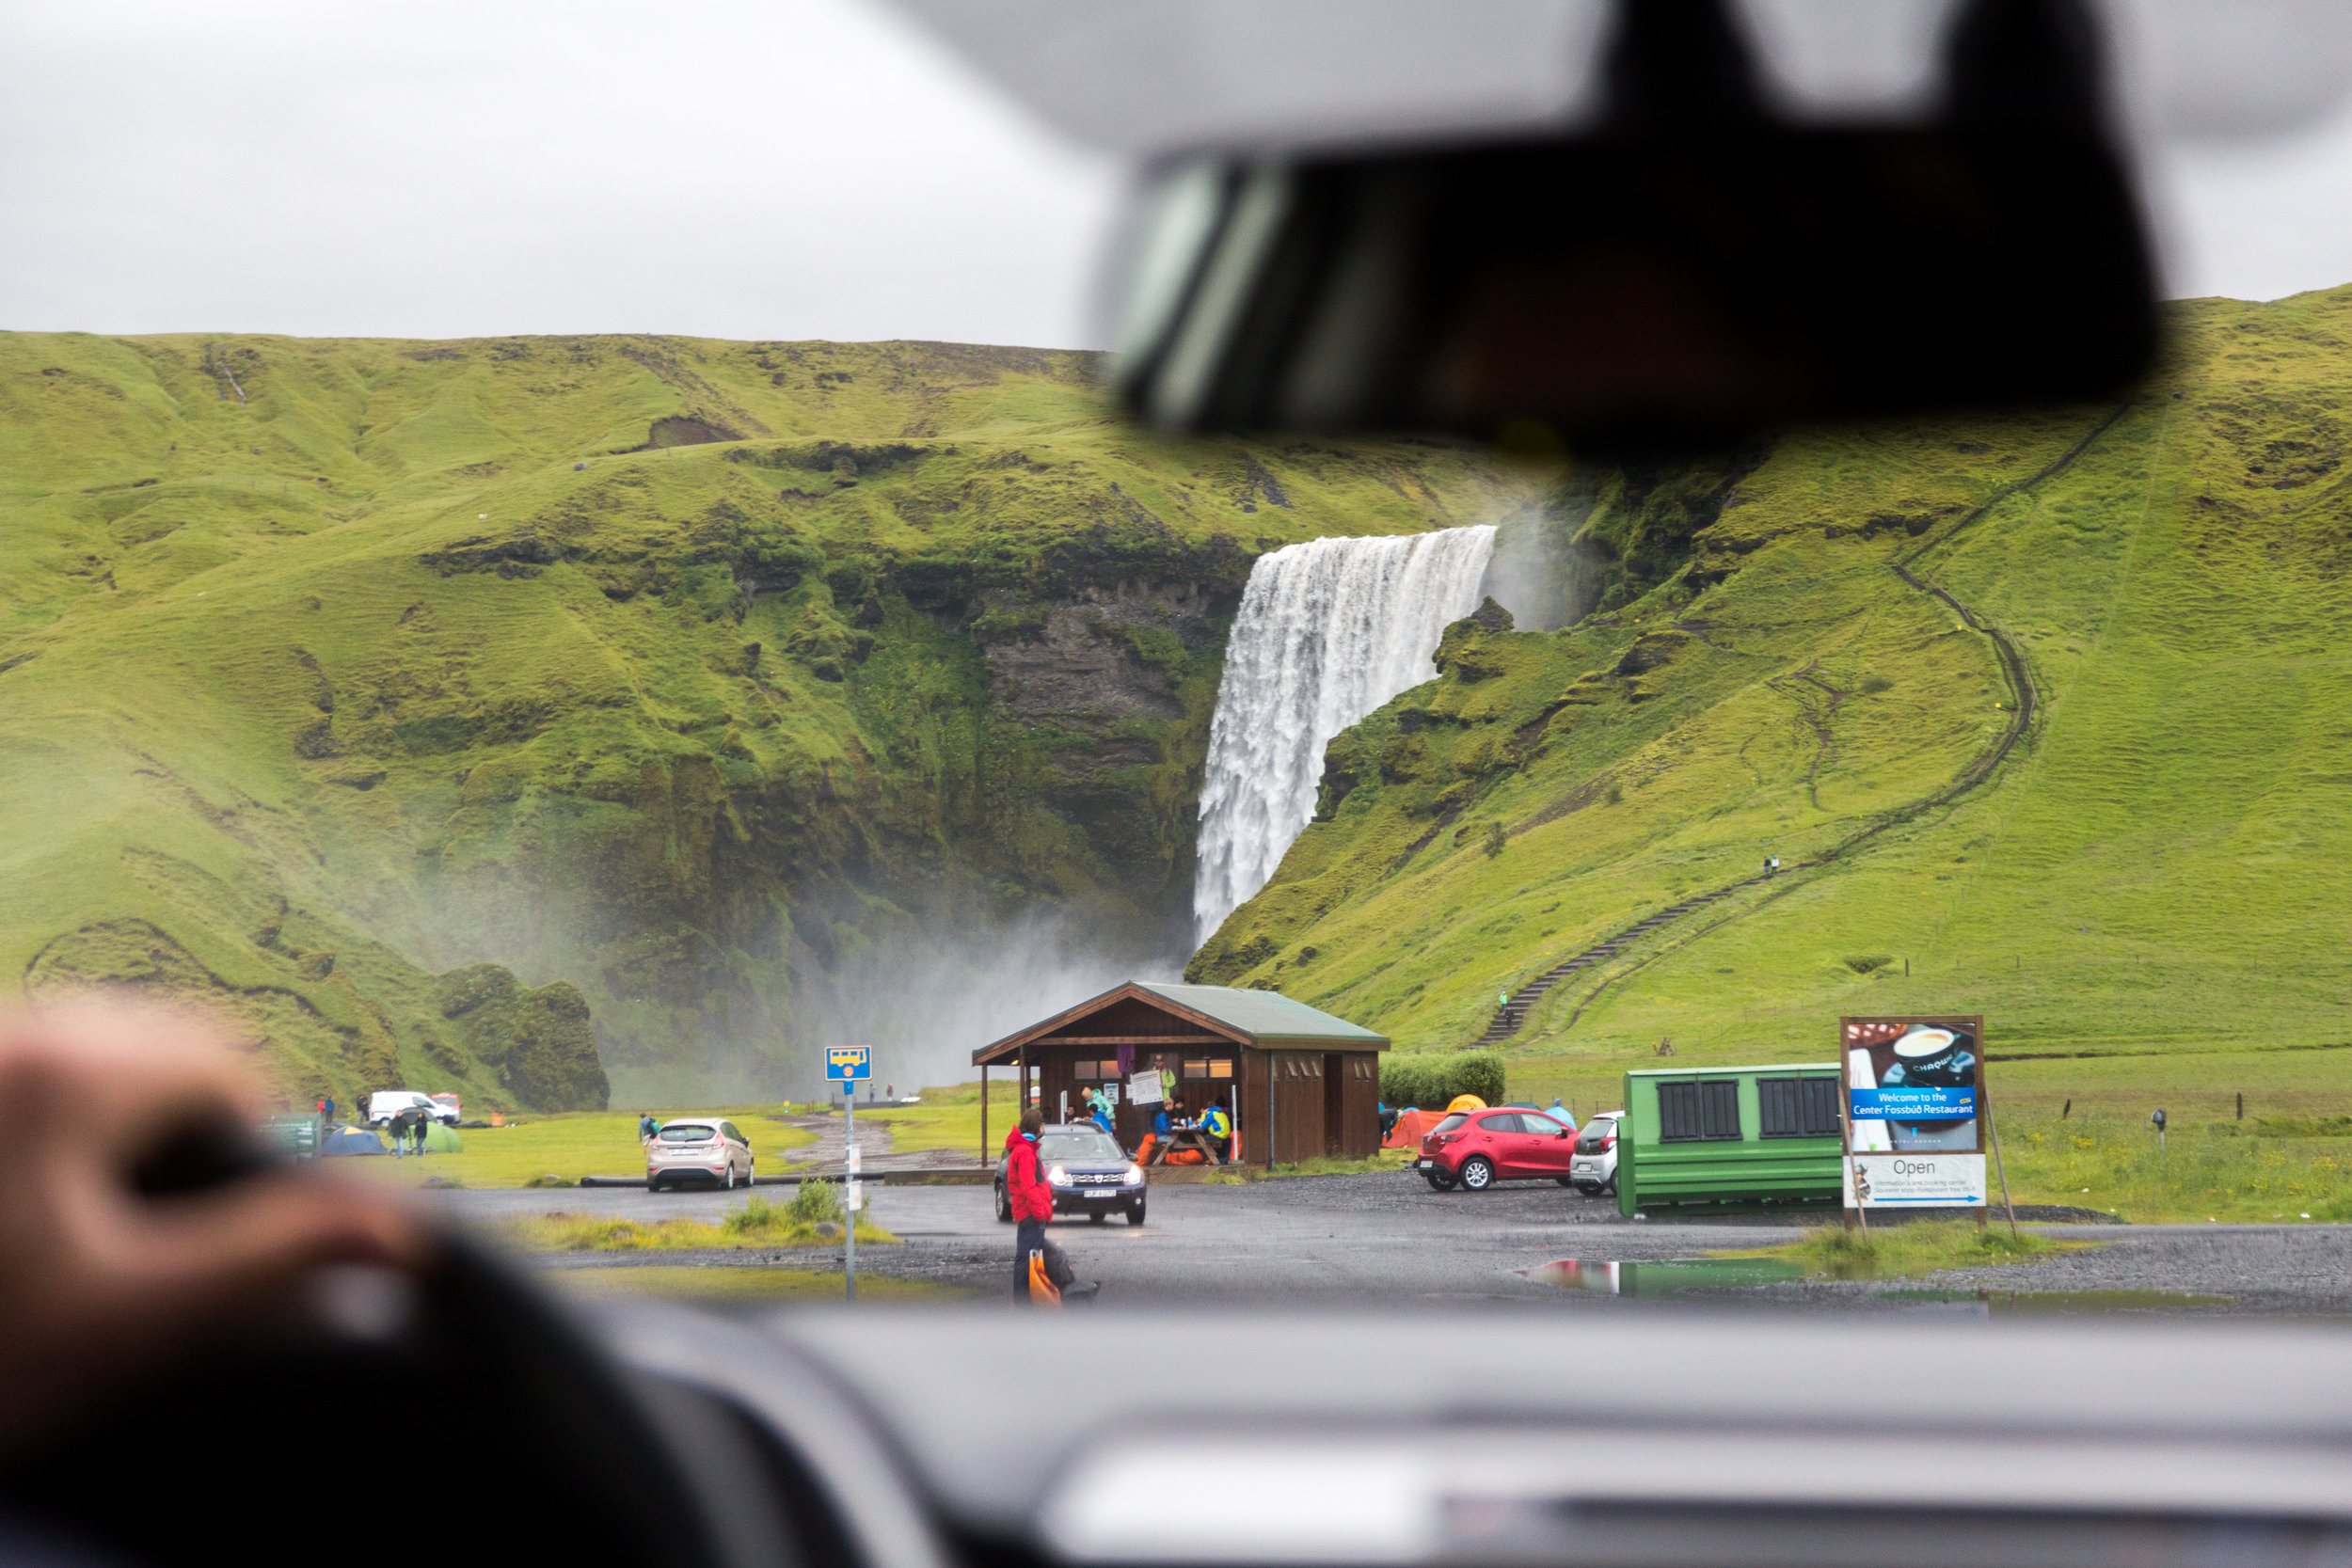 All Iceland Photos in this blog post courtesy of Kraw Photography & VoyEdge RX